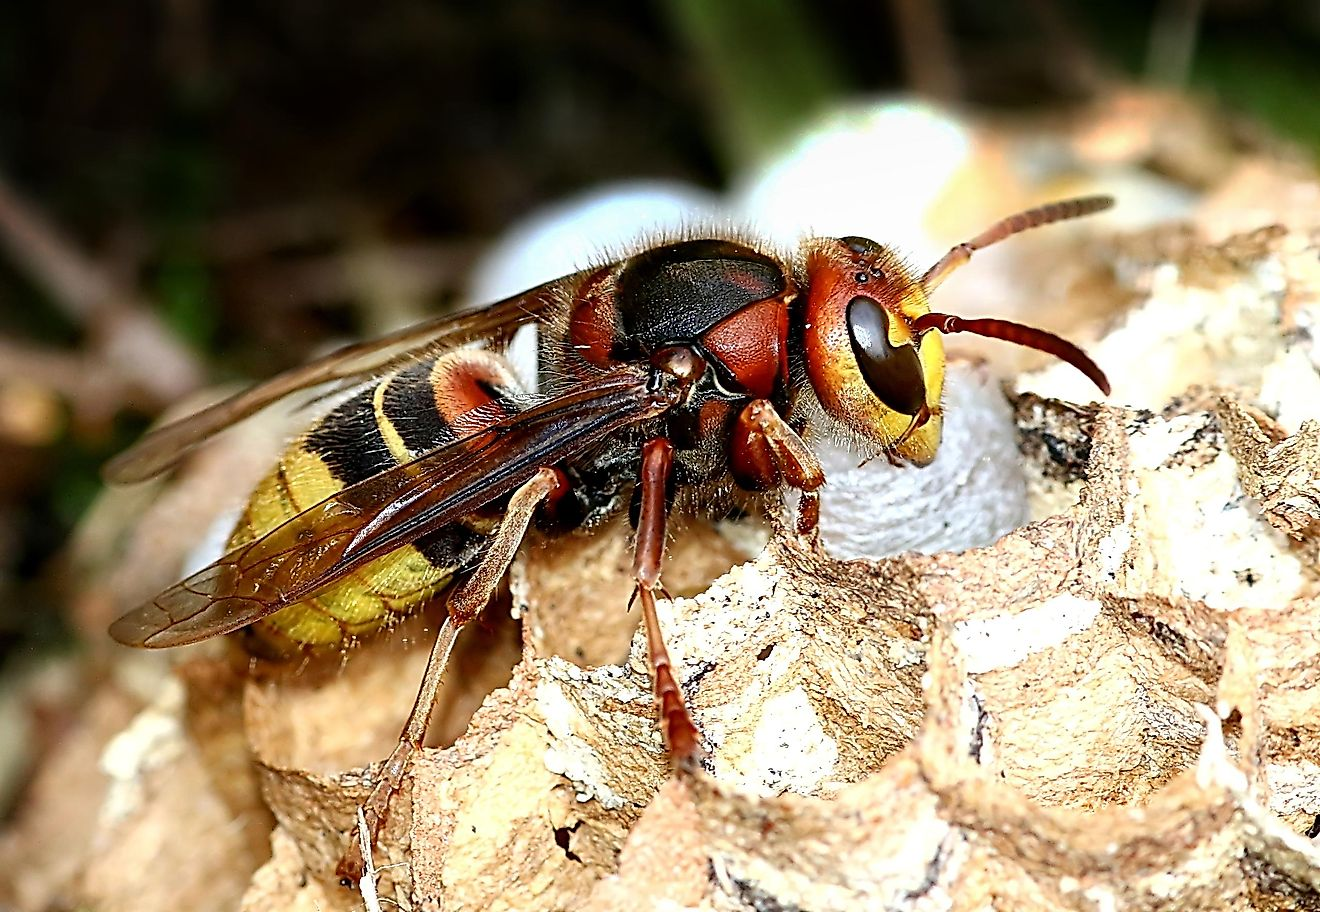 Also known as the Vespa crabro, it is the only true hornet species that can be found in the continent of North America.